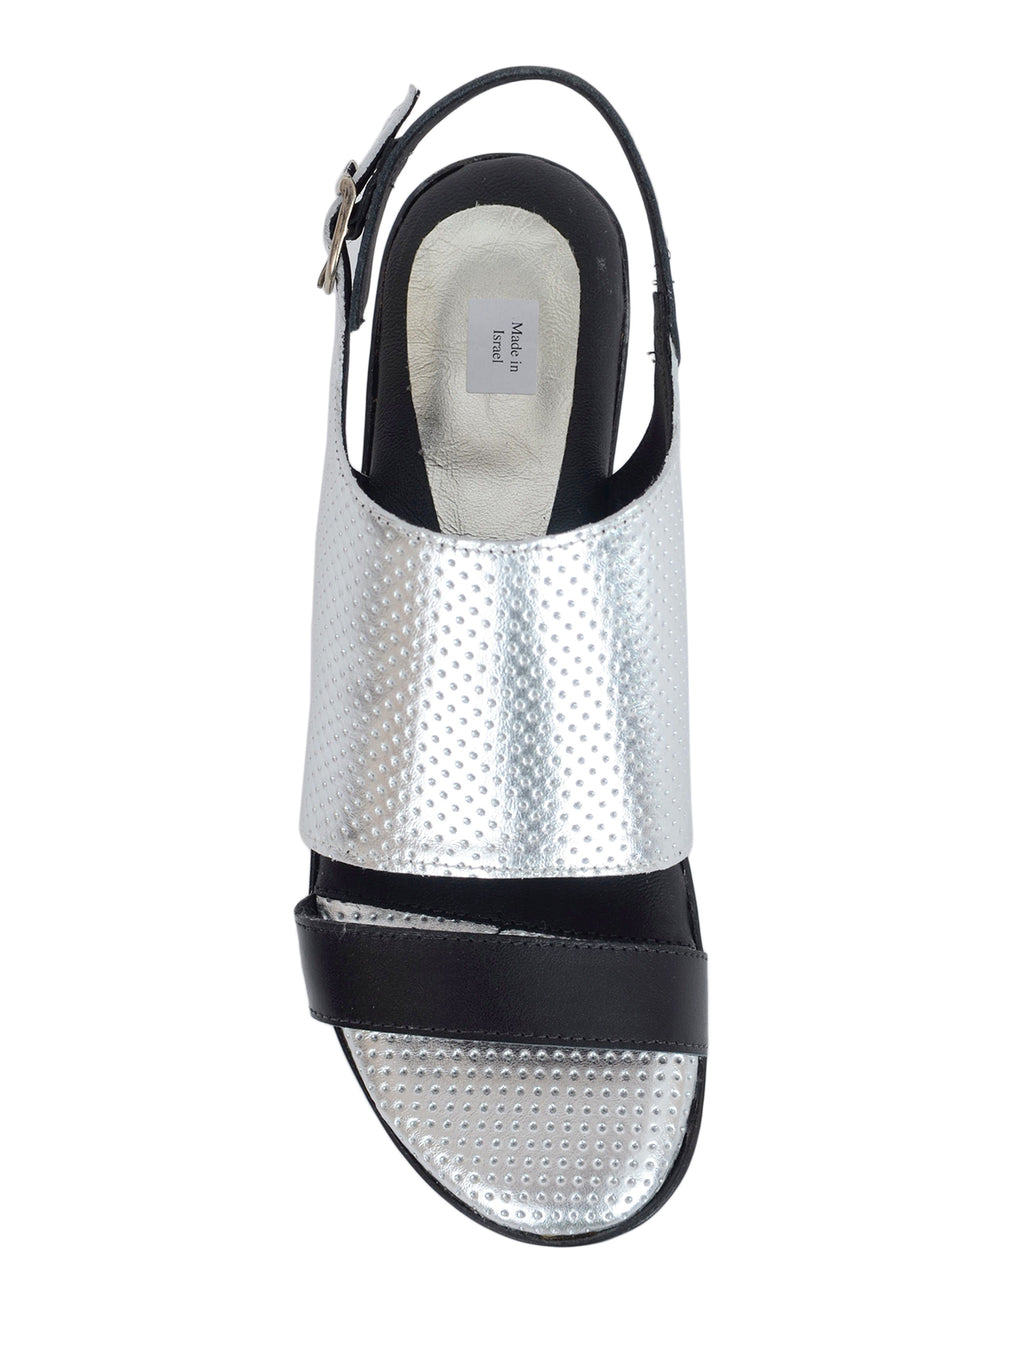 Mango Shoes Perforated Slingbacks, Silver